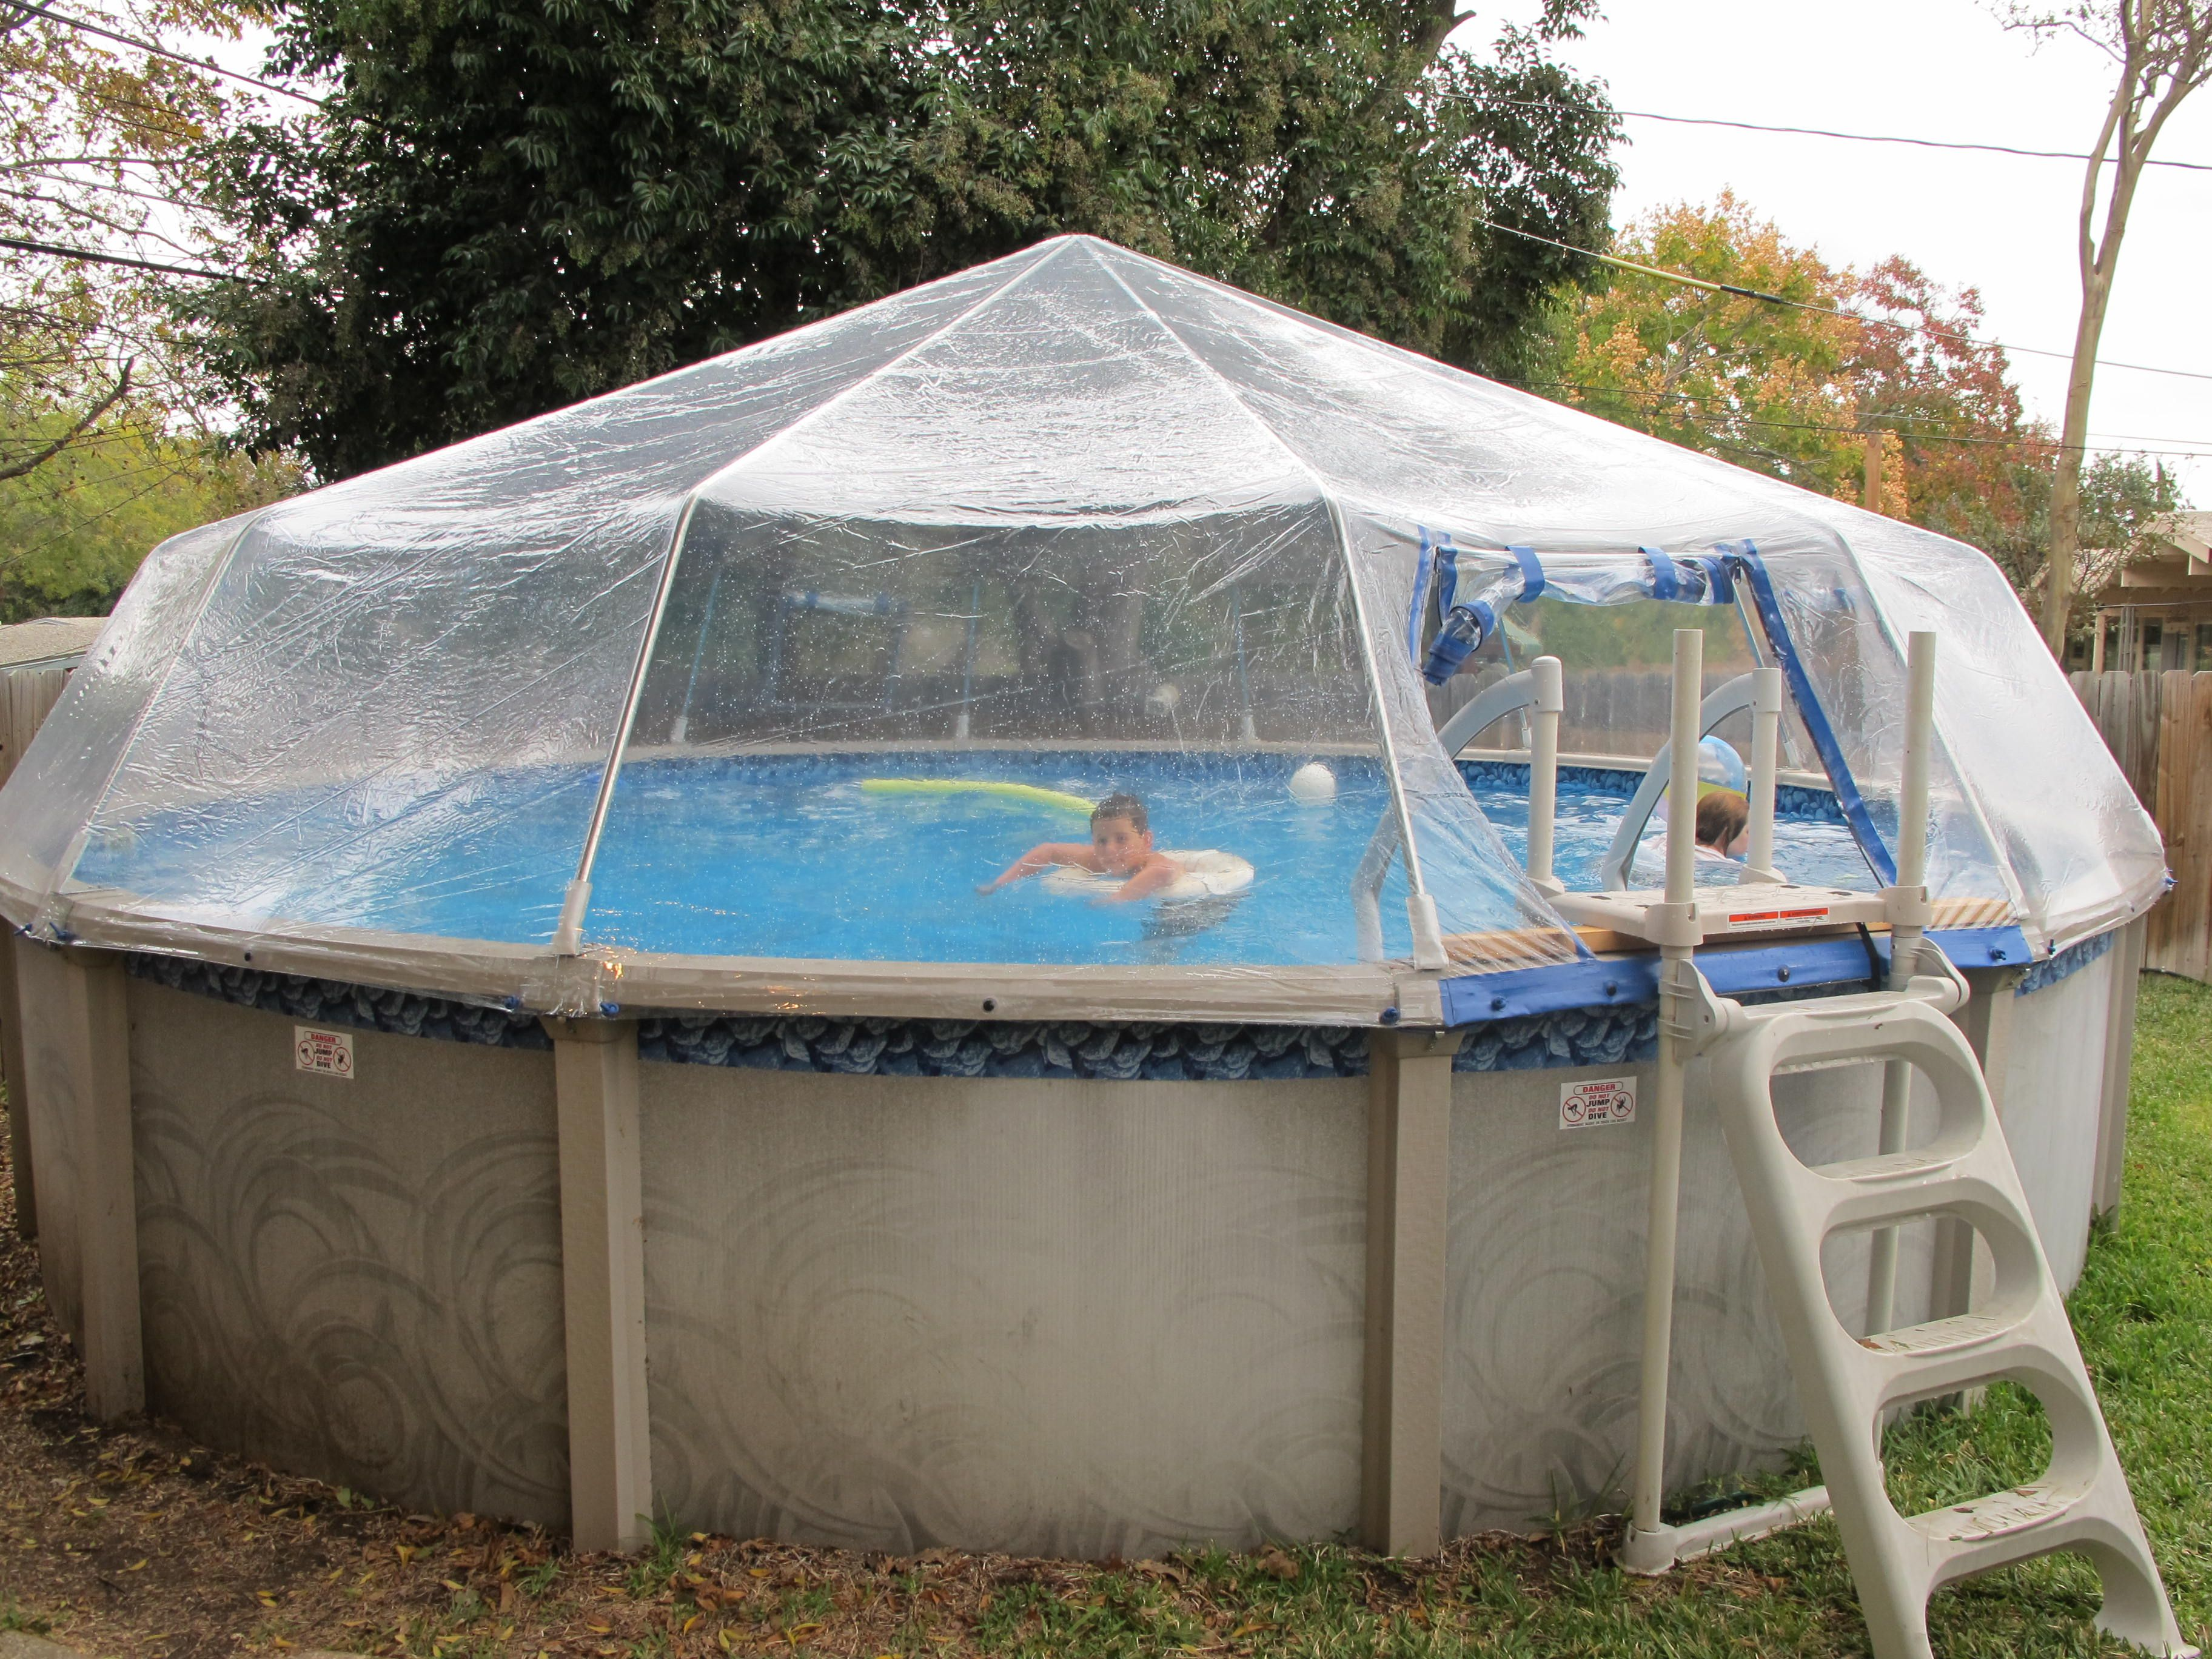 Above ground pool dome design decor 32591 decorating ideas - Above ground pool decor ...